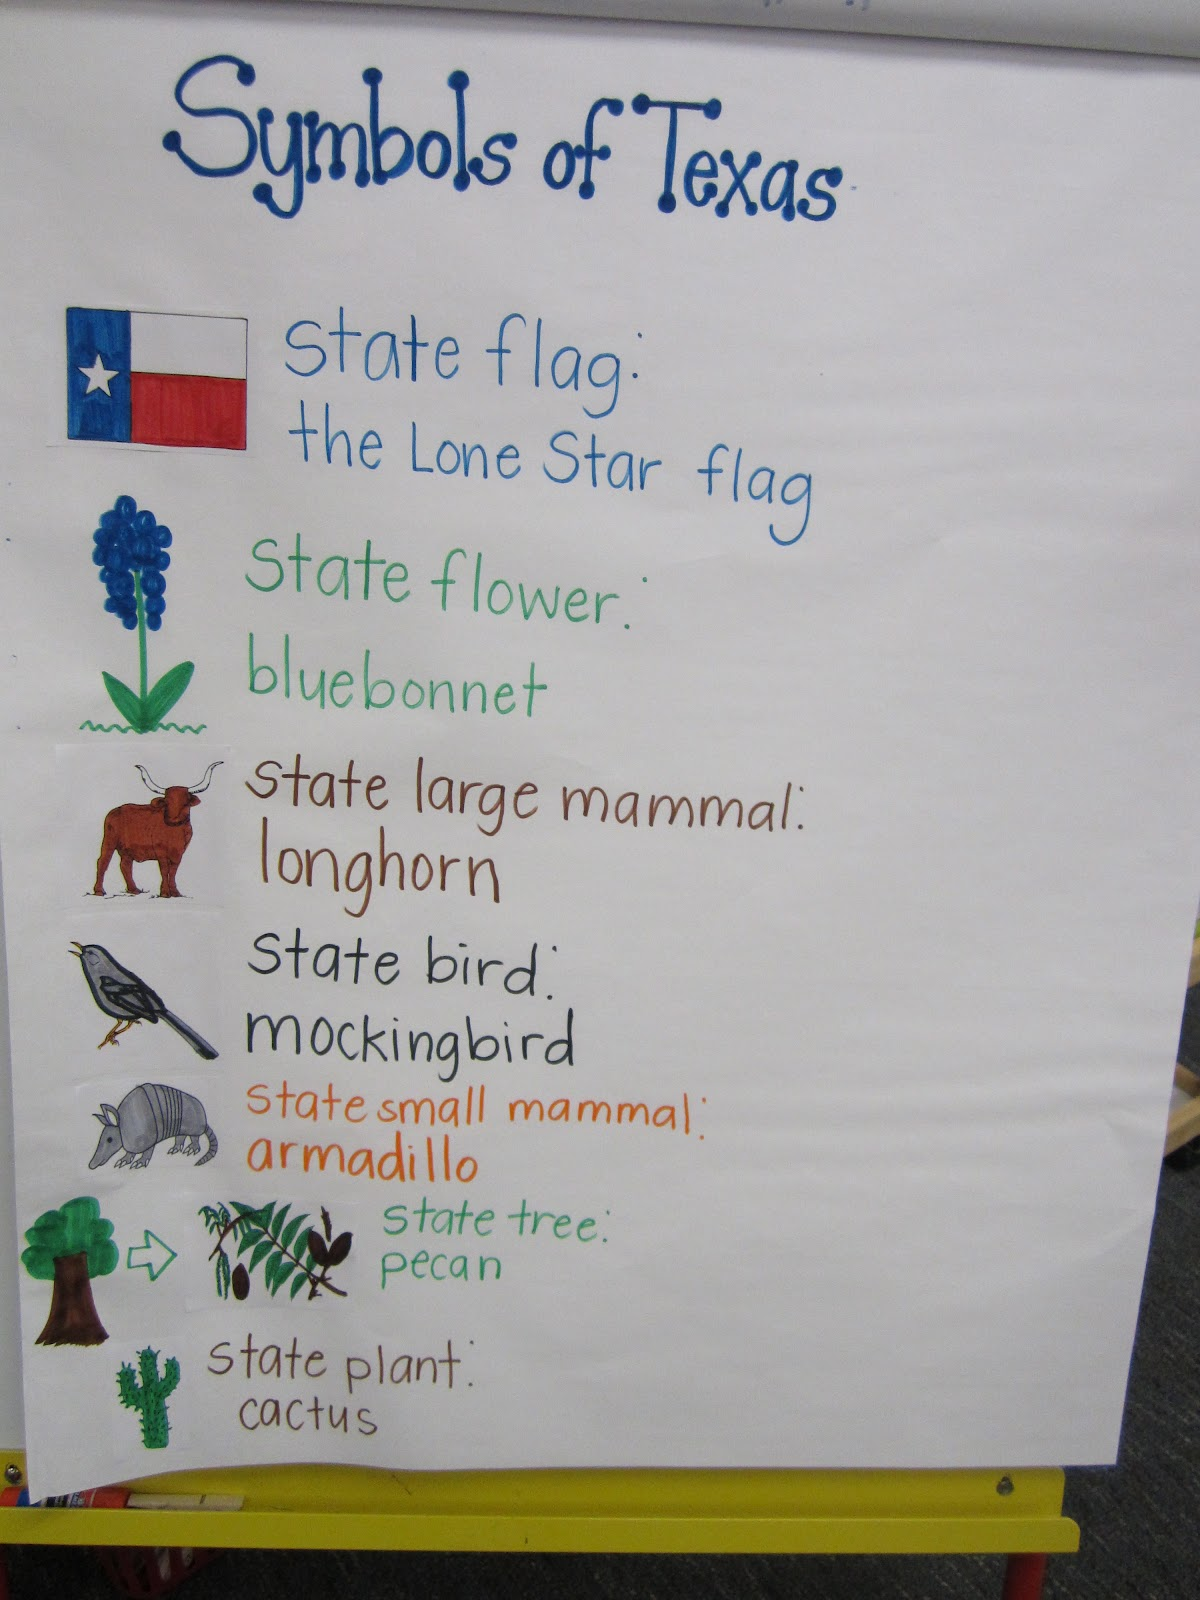 The following week we discussed the different Texas symbols.